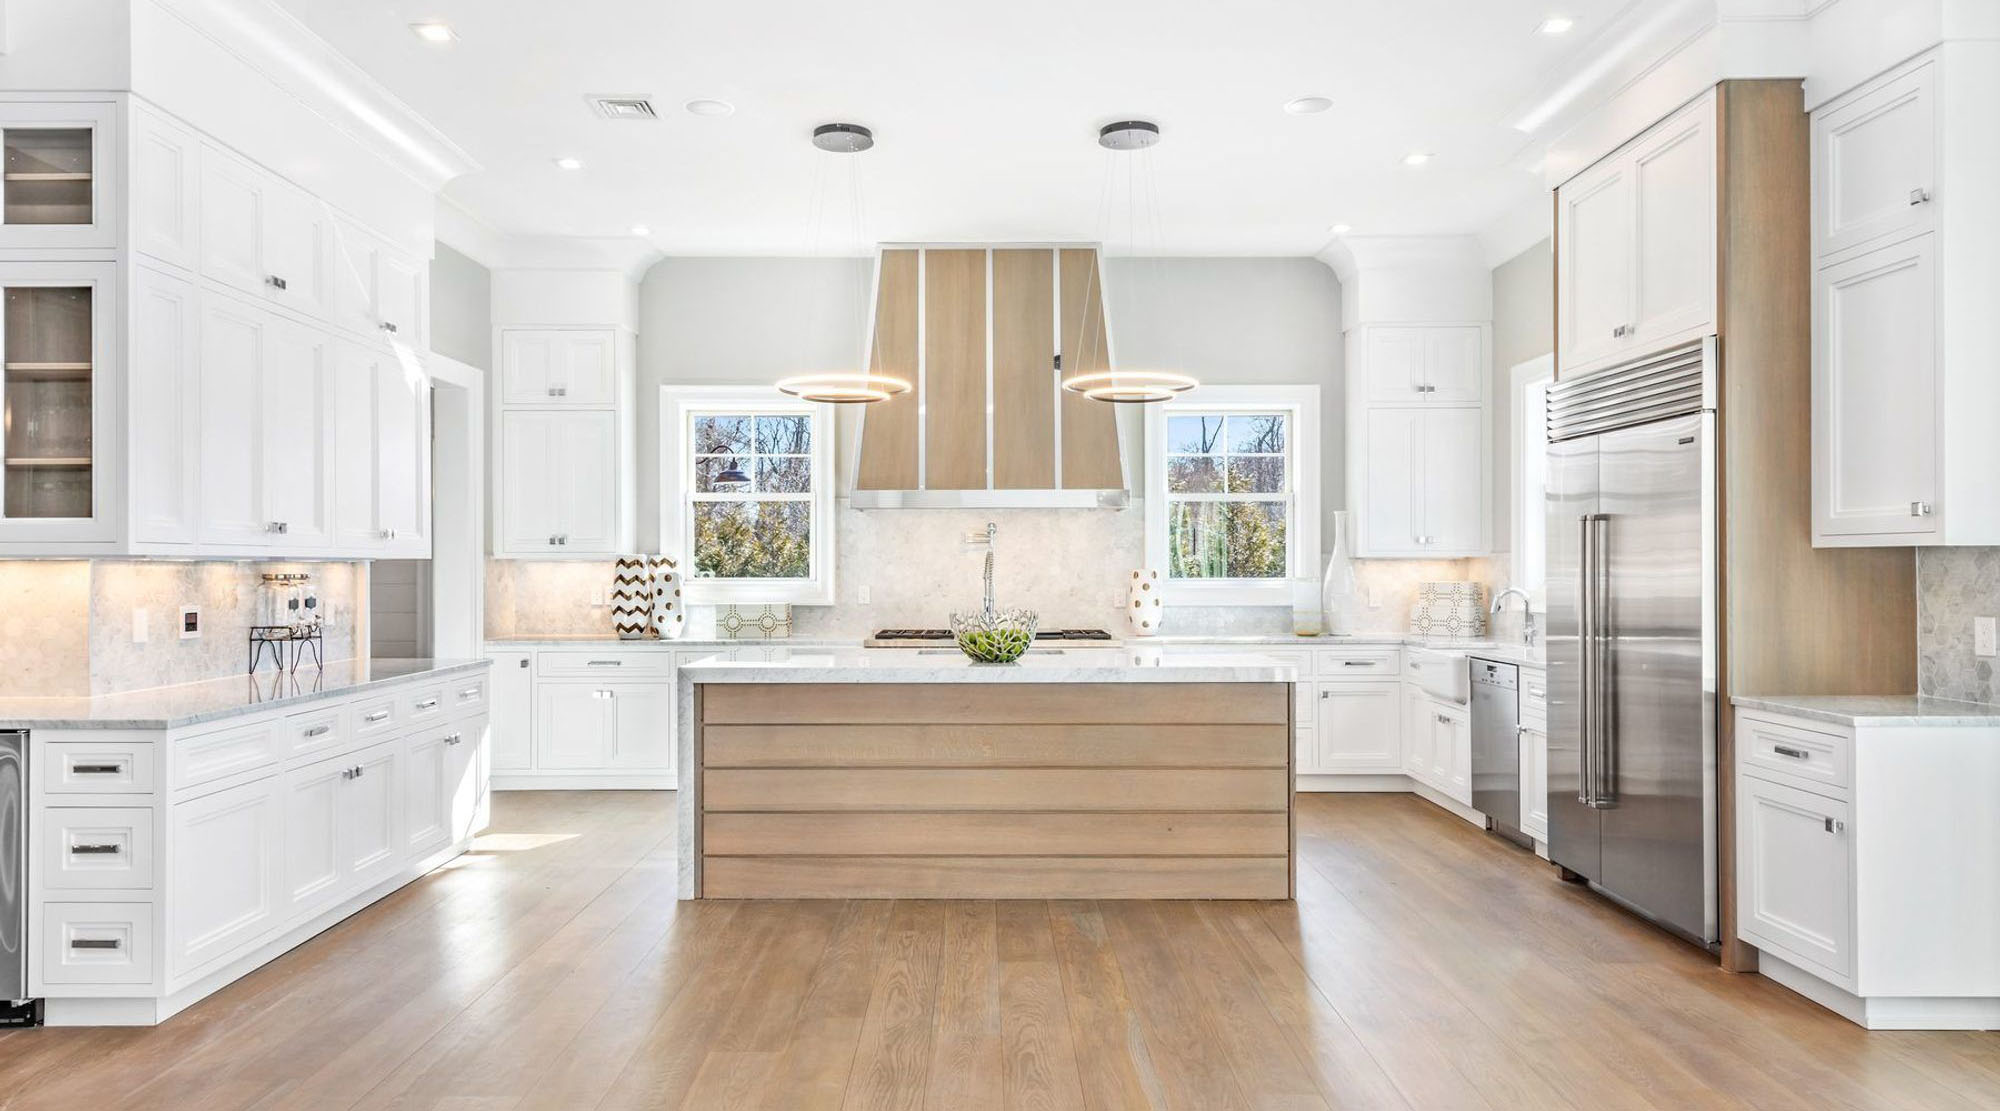 White cabinets with a light wood shiplap style island.